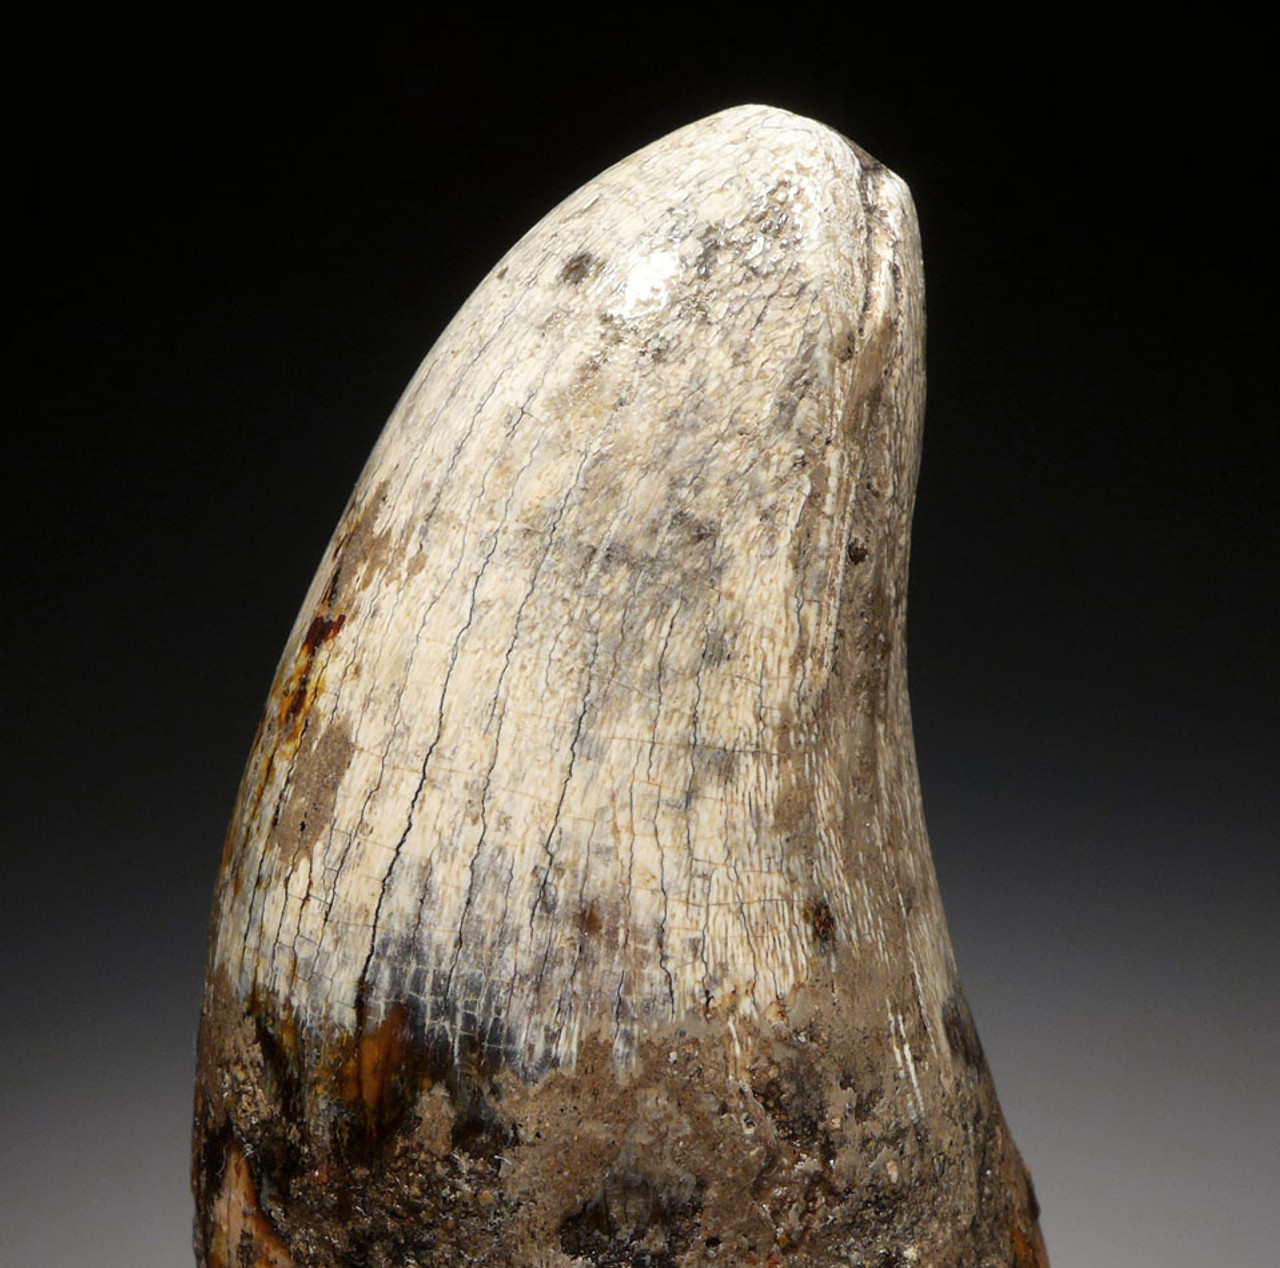 OUR LARGEST AND FINEST FOSSIL TOOTH FROM A JAVA MAN KILLER PREHISTORIC CROCODILE OF THE FAMOUS HOMO ERECTUS DEPOSITS OF SOLO RIVER INDONESIA *CROC049